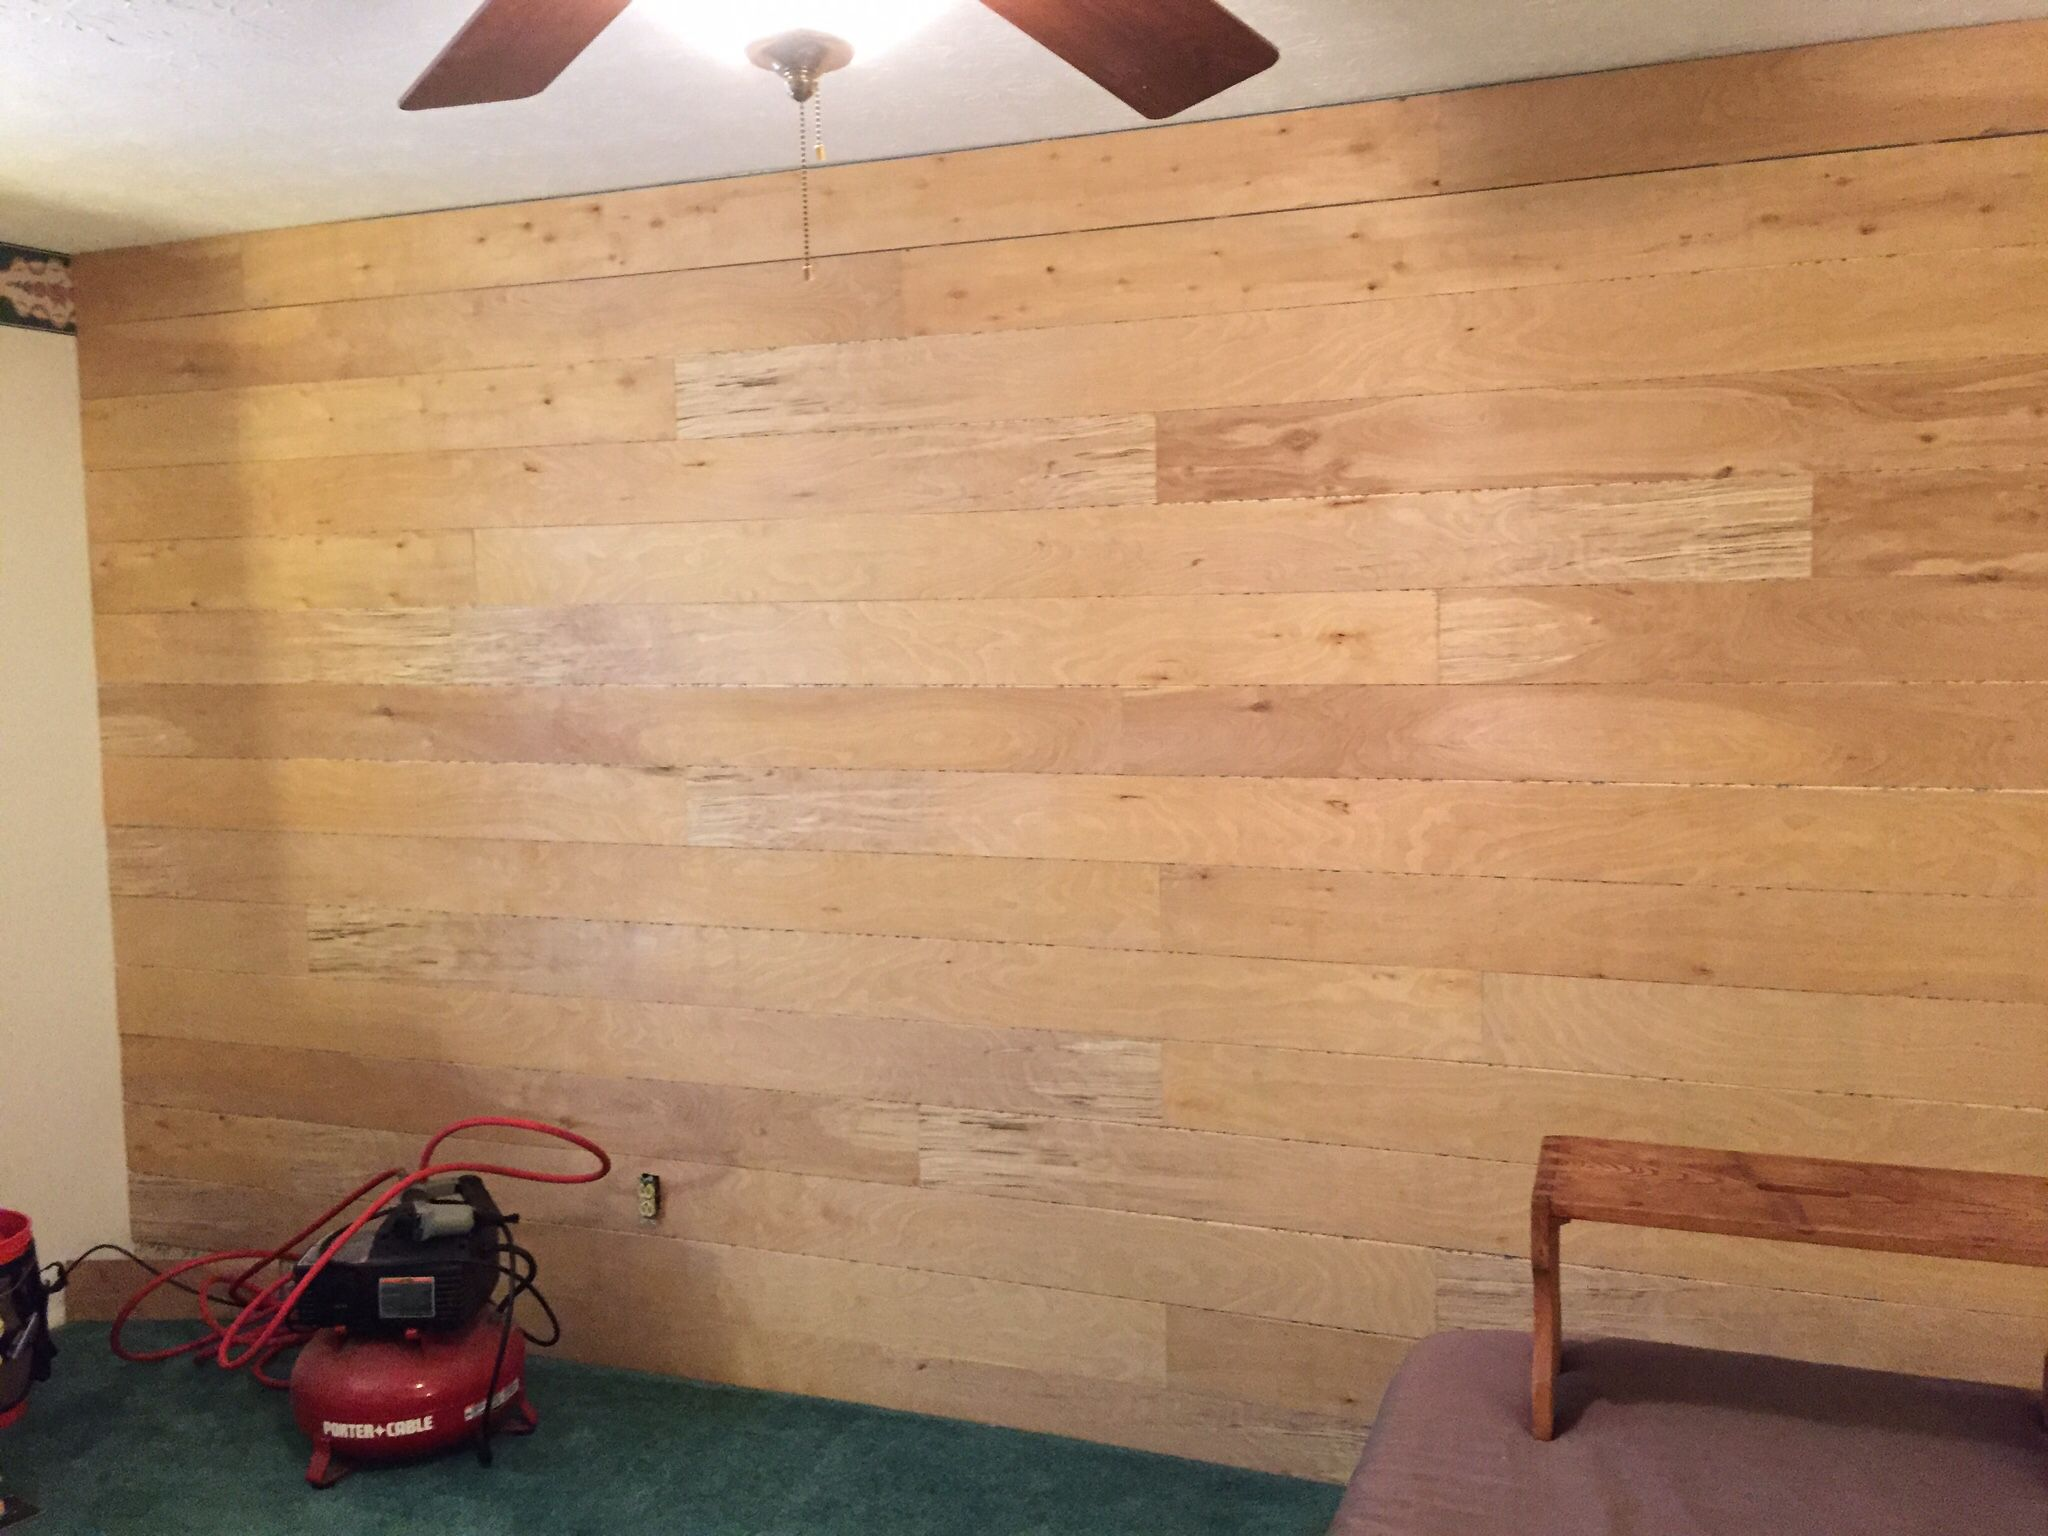 covering impossible-to-remove wallpaper with faux shiplap